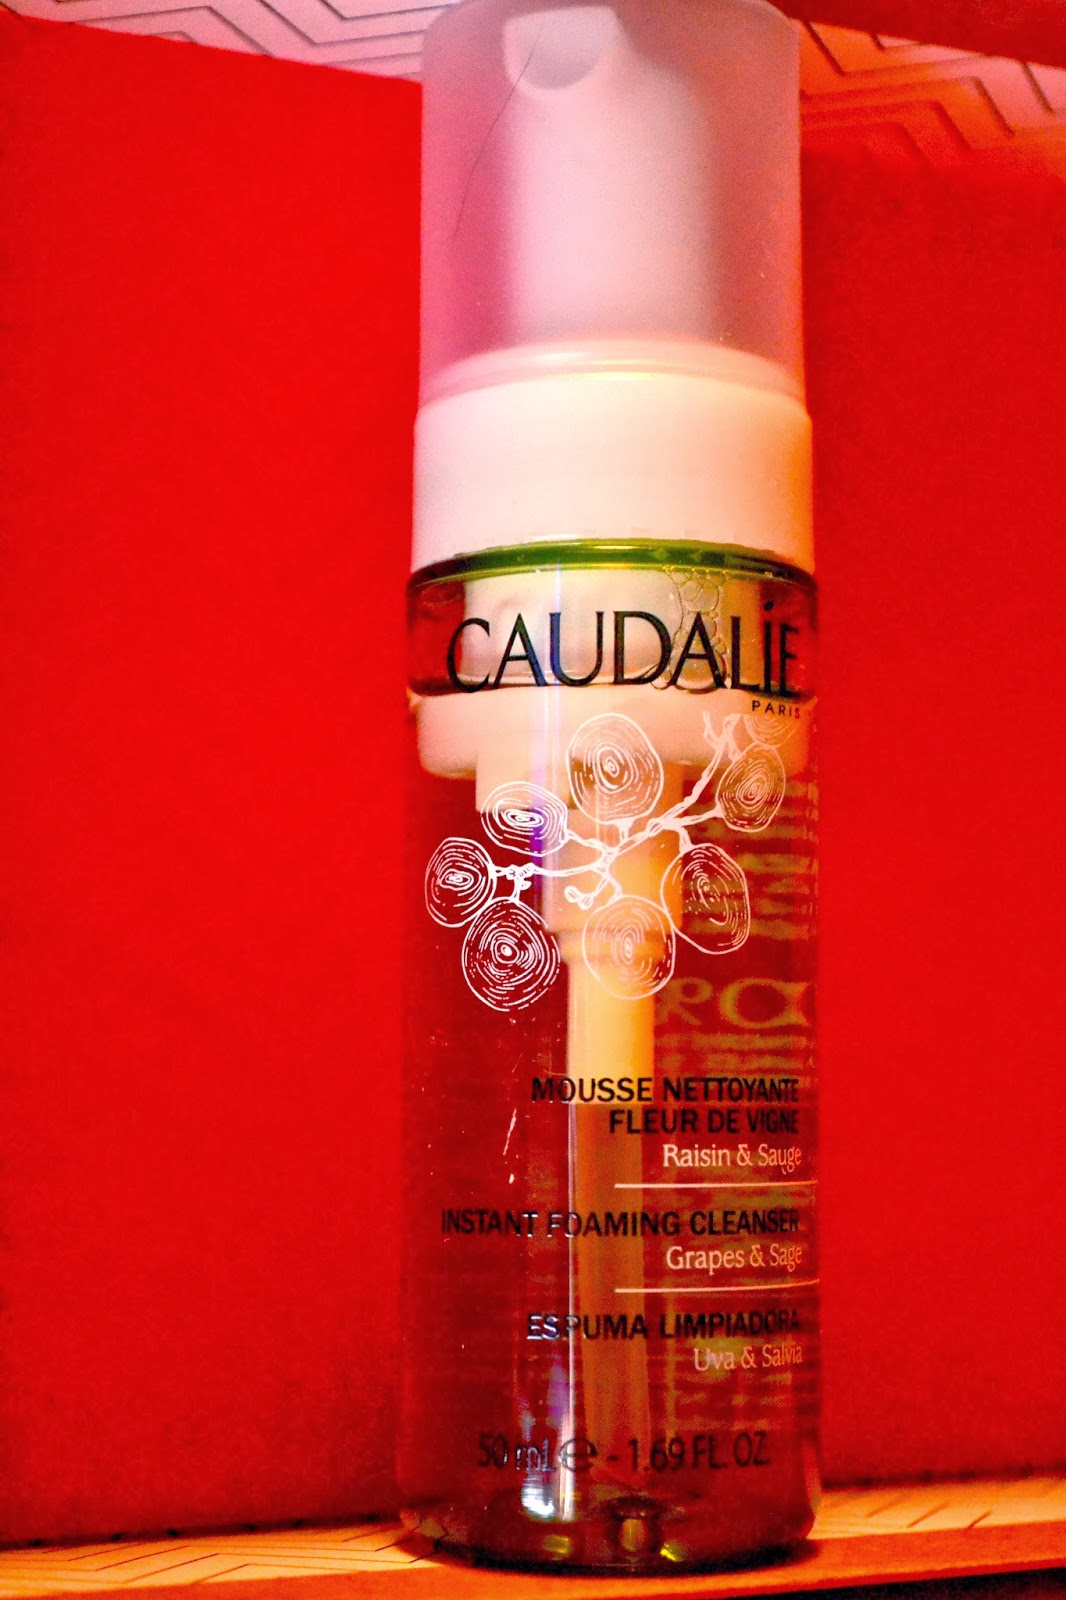 Caudalie Foaming Cleanser